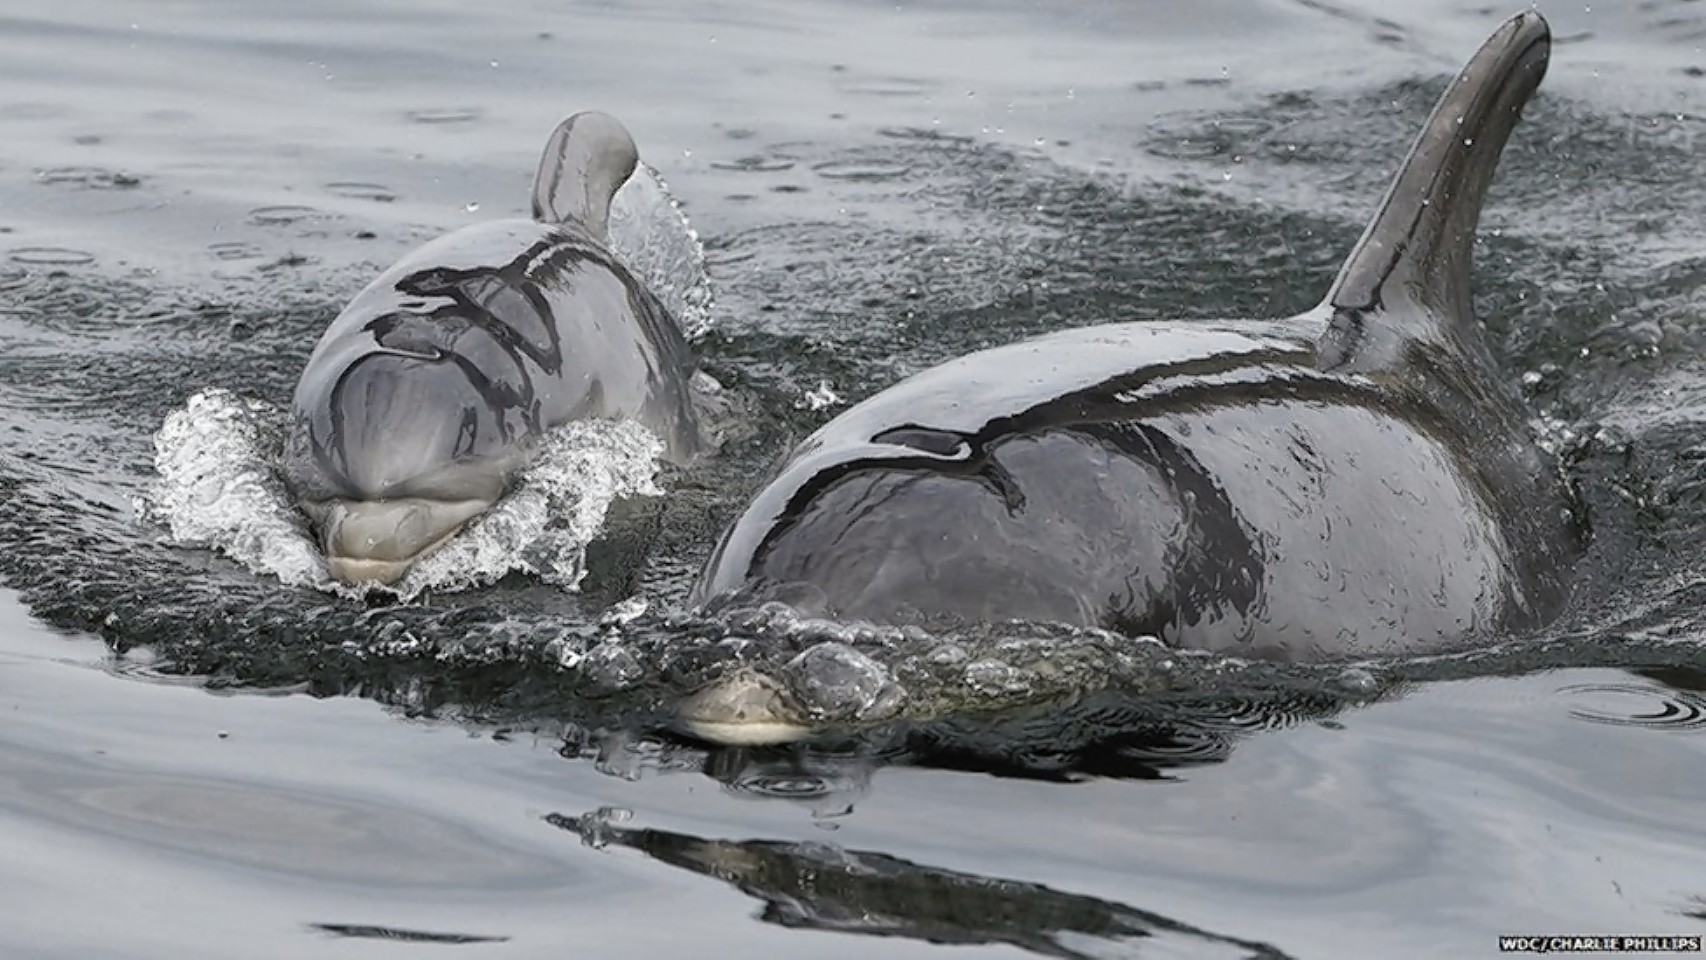 Bottlenose dolphins. Photo by Charlie Phillips